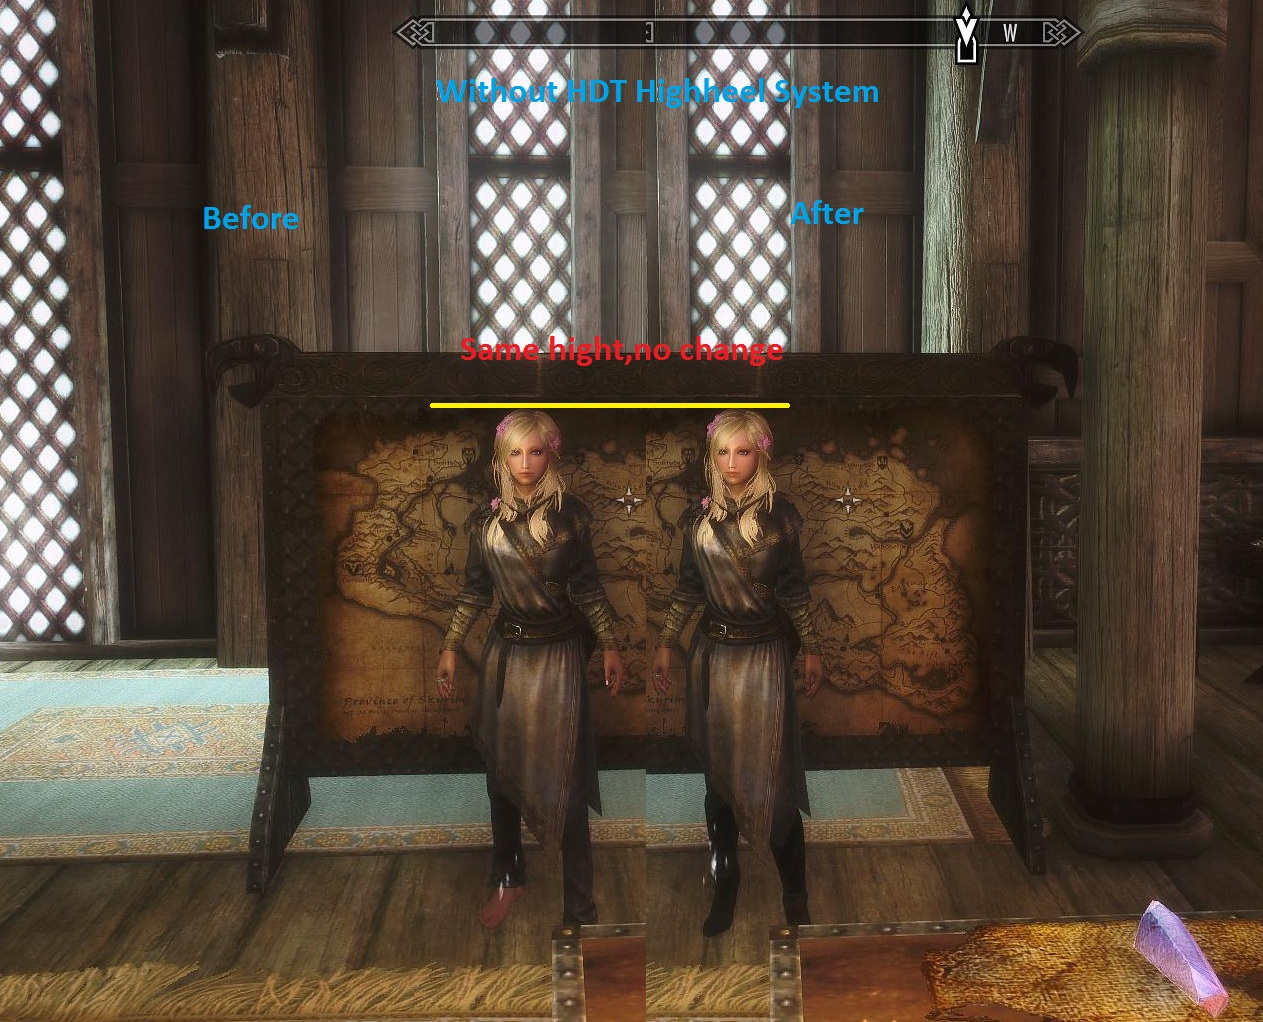 Hdt скачать скайрим. Cloaks of skyrim hdt-pe fixed hdt.